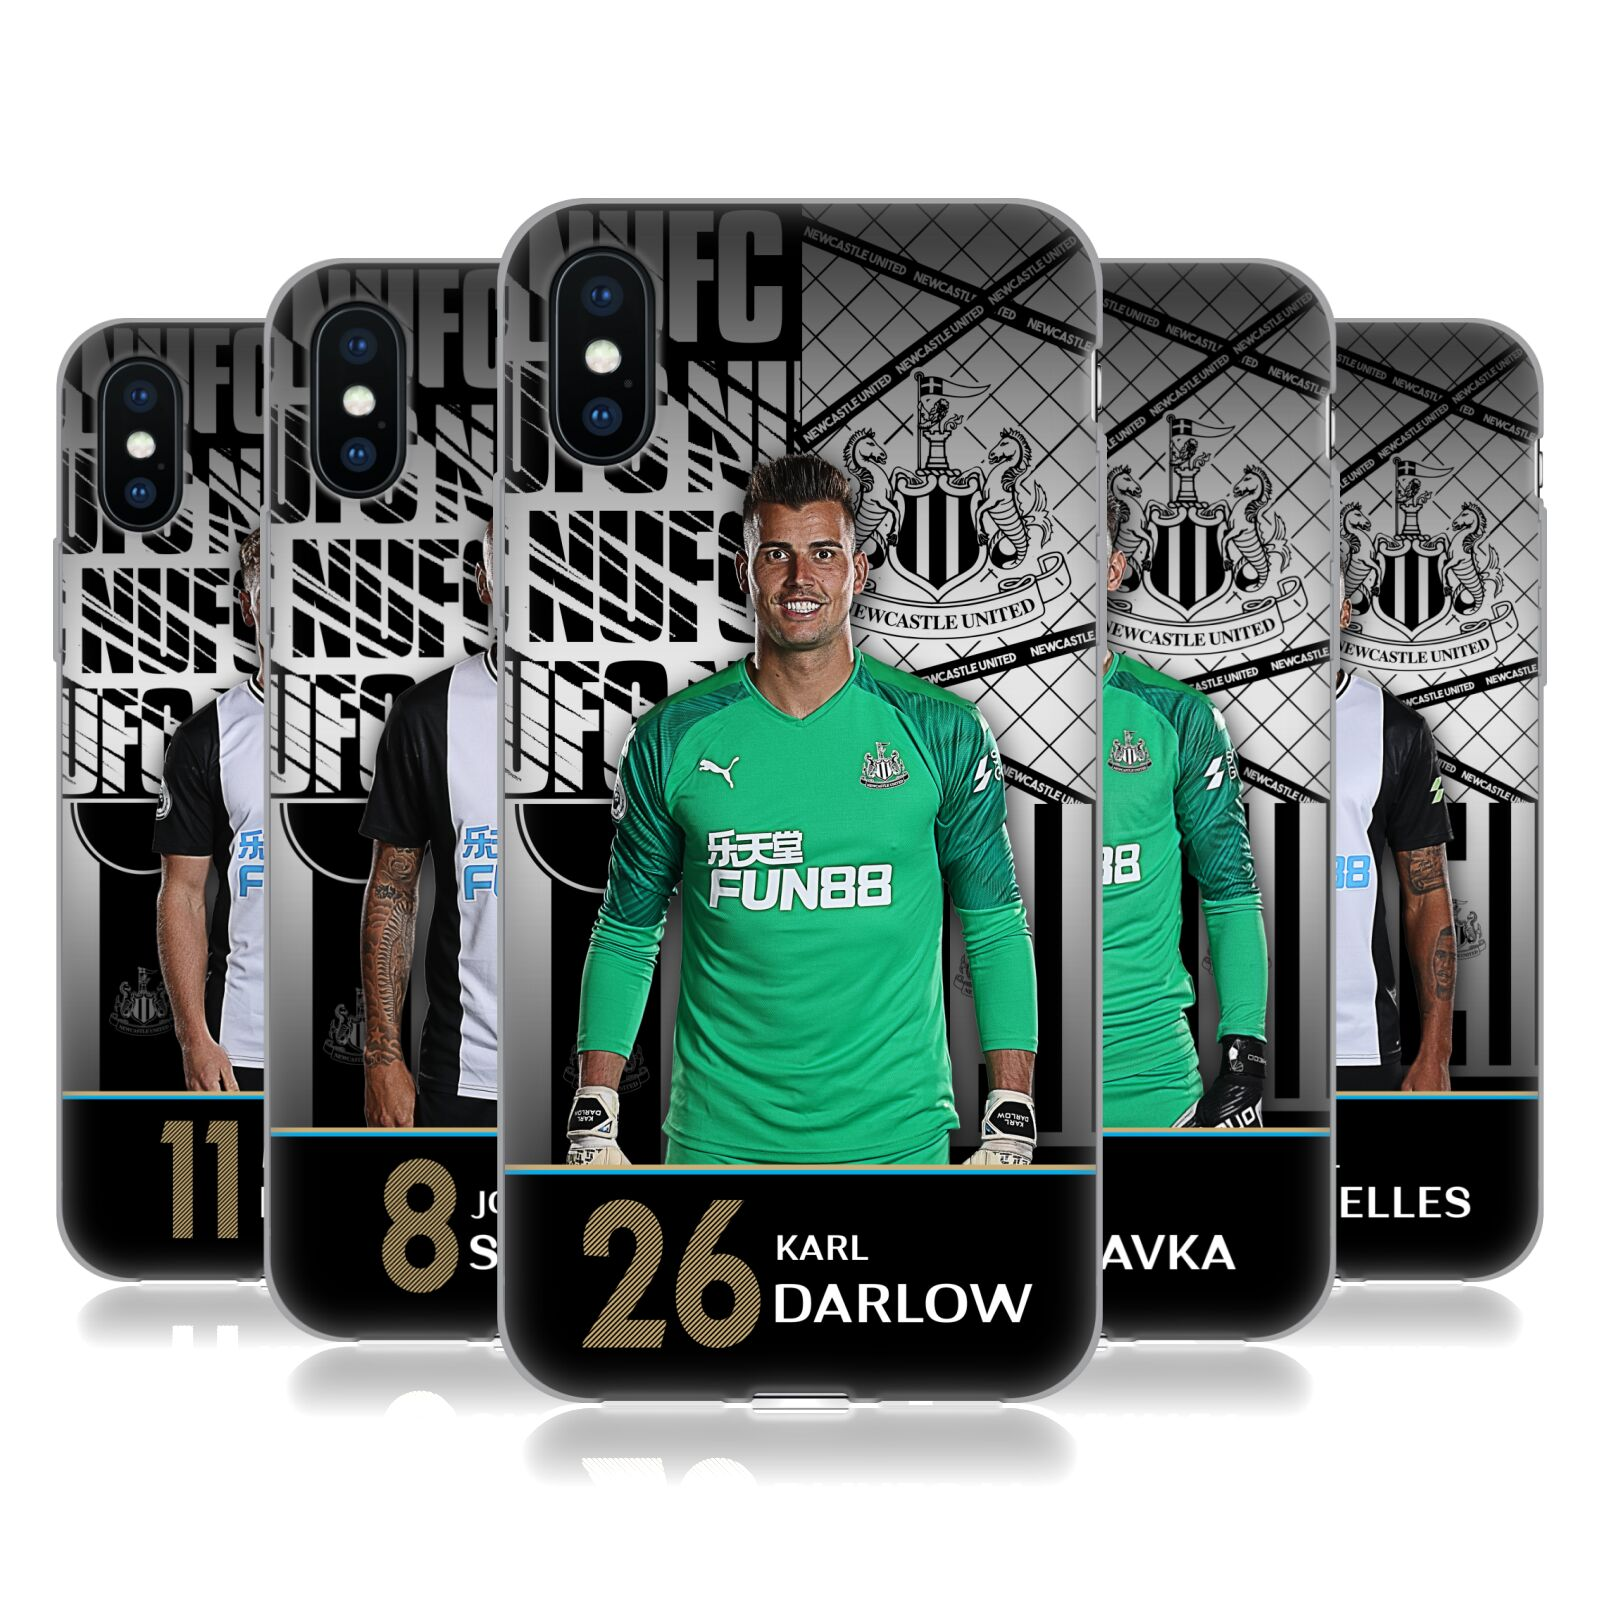 Newcastle United FC NUFC <!--translate-lineup-->2019/20 FIRST TEAM GROUP 1<!--translate-lineup-->